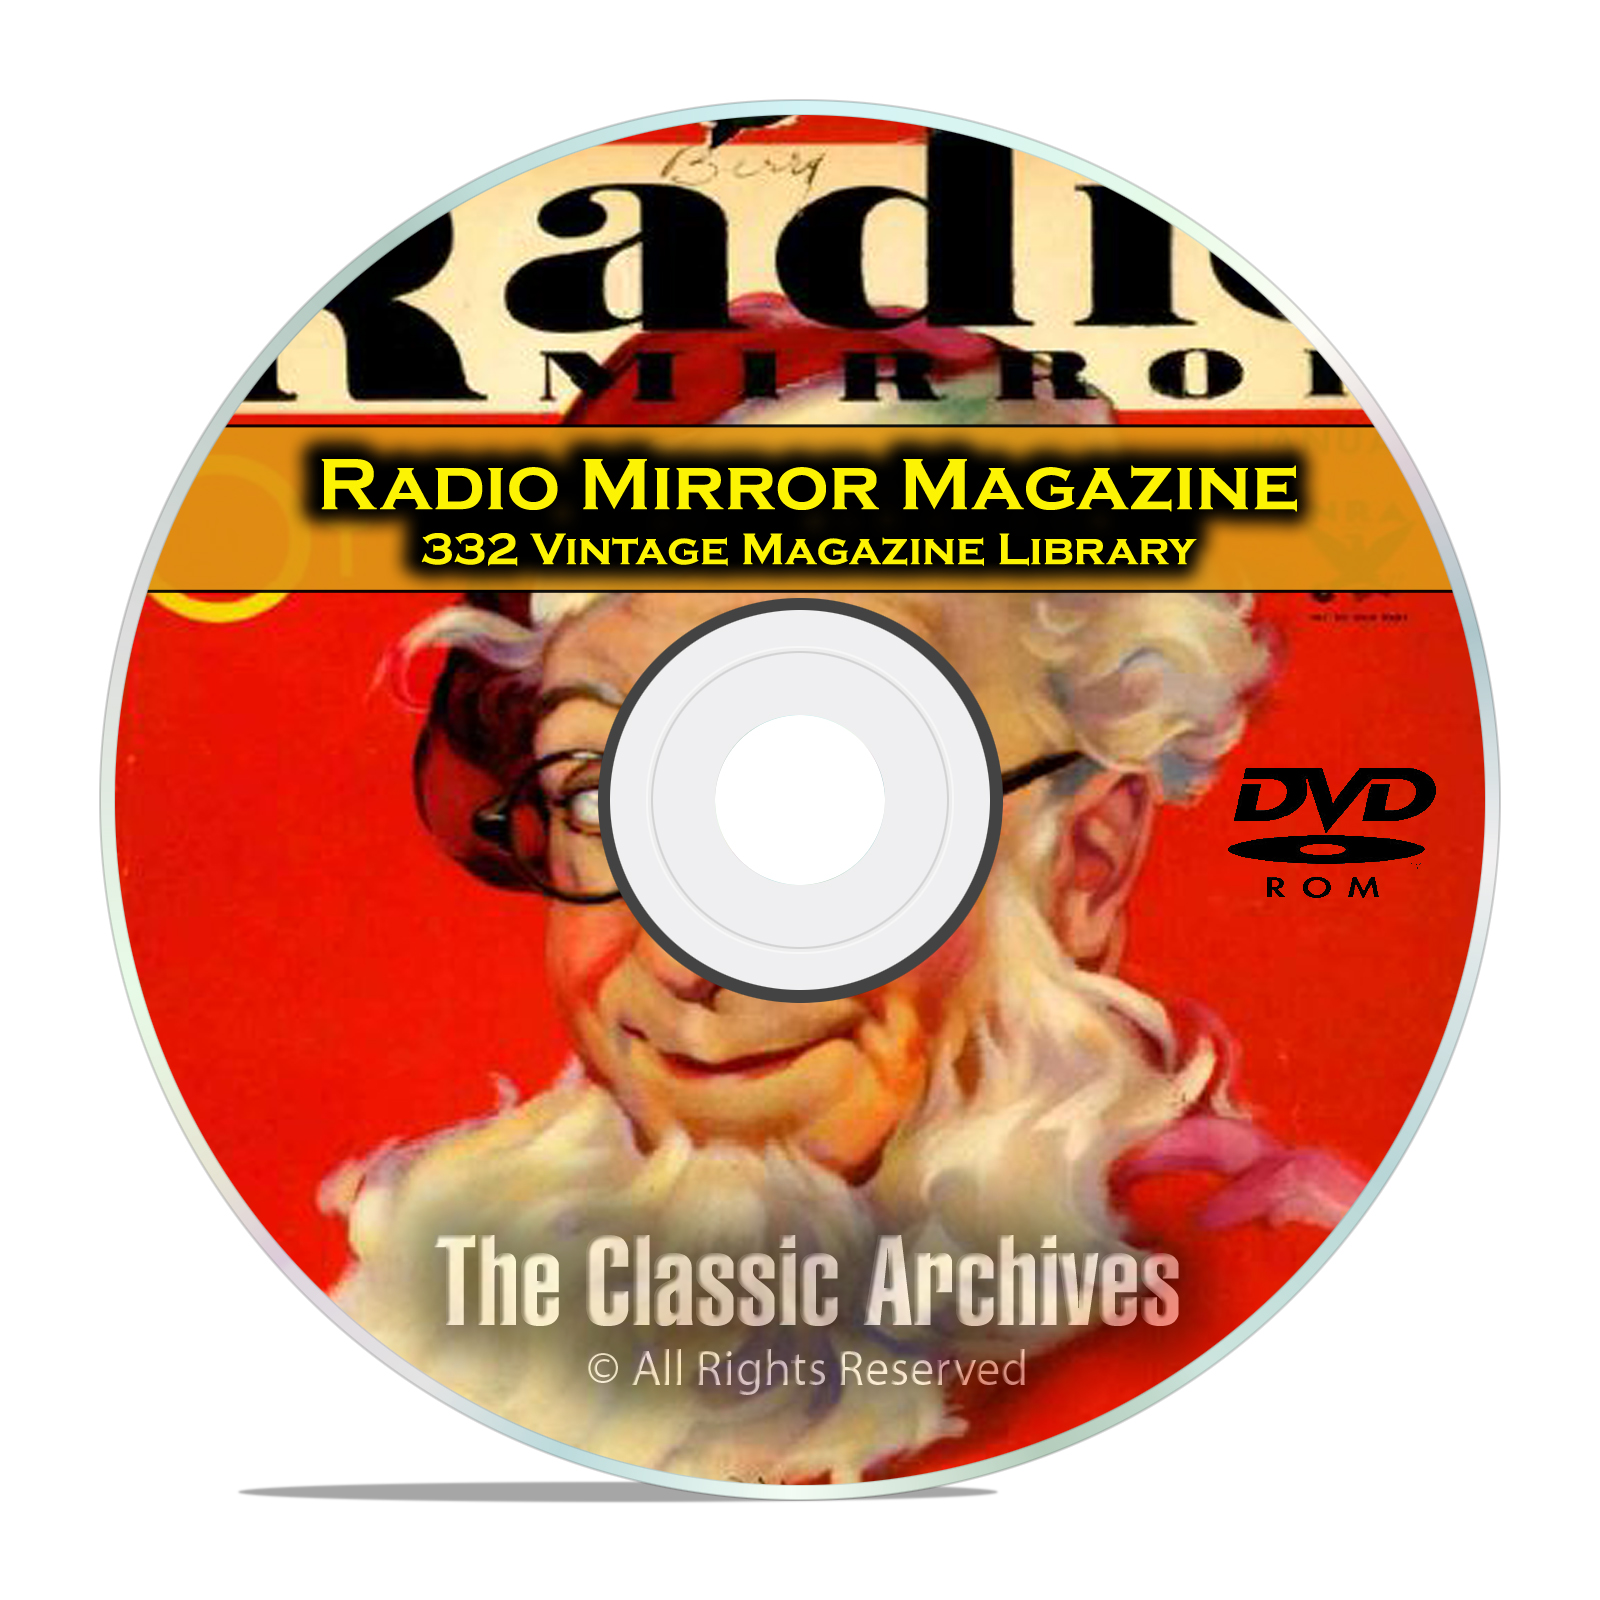 Radio Mirror, 332 Vintage Old Time Radio Magazine Collection in PDF on DVD